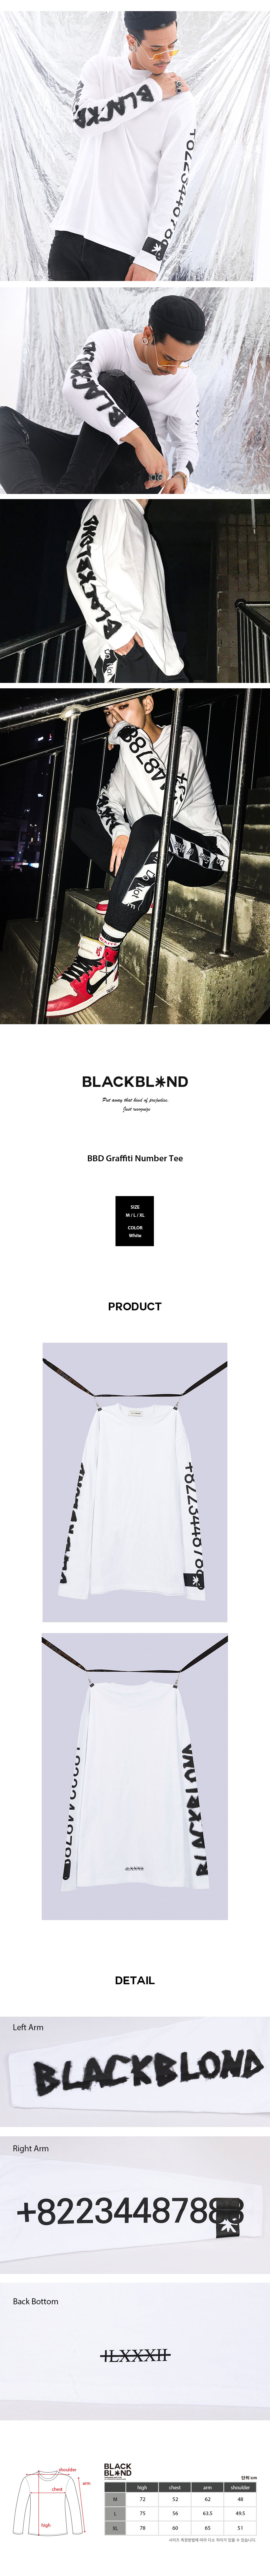 BBD-Graffiti-Number-Tee-%28White%29.jpg